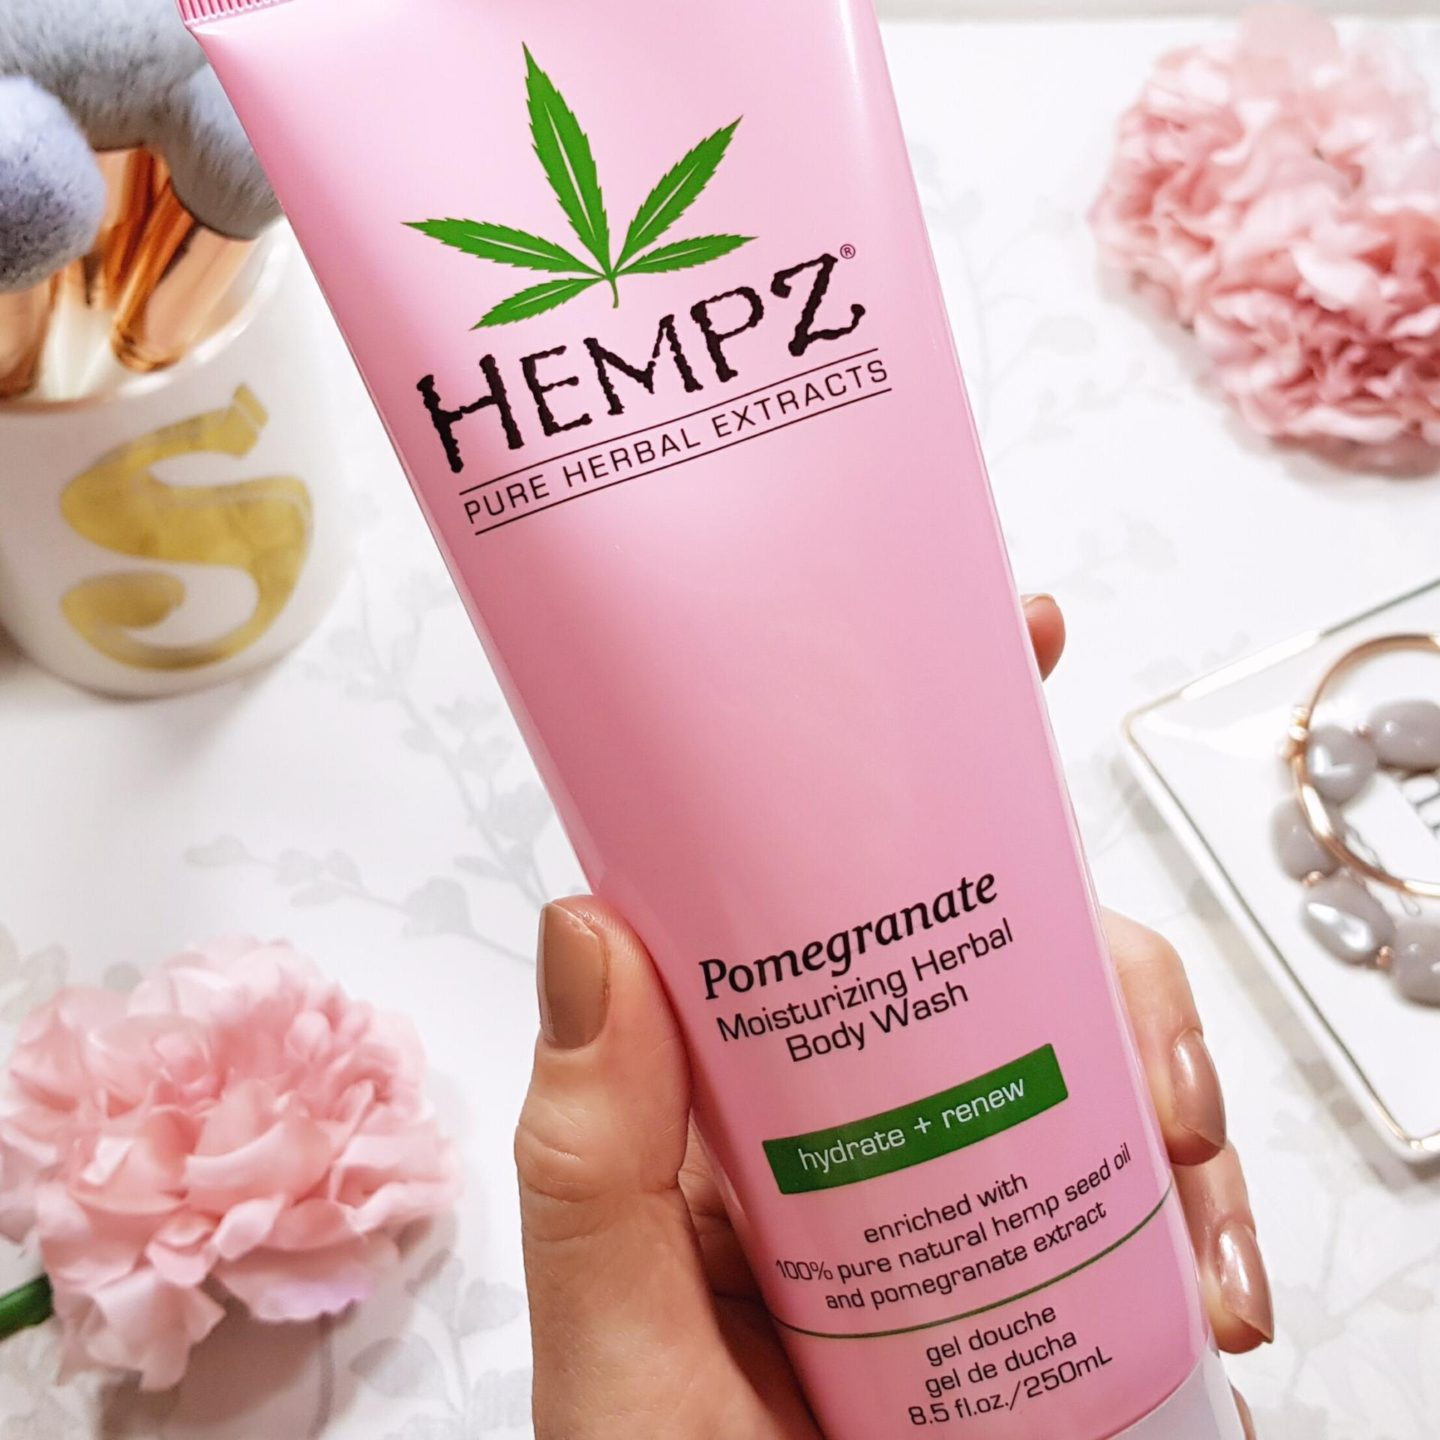 Hempz Beauty Pomegranate Body Wash